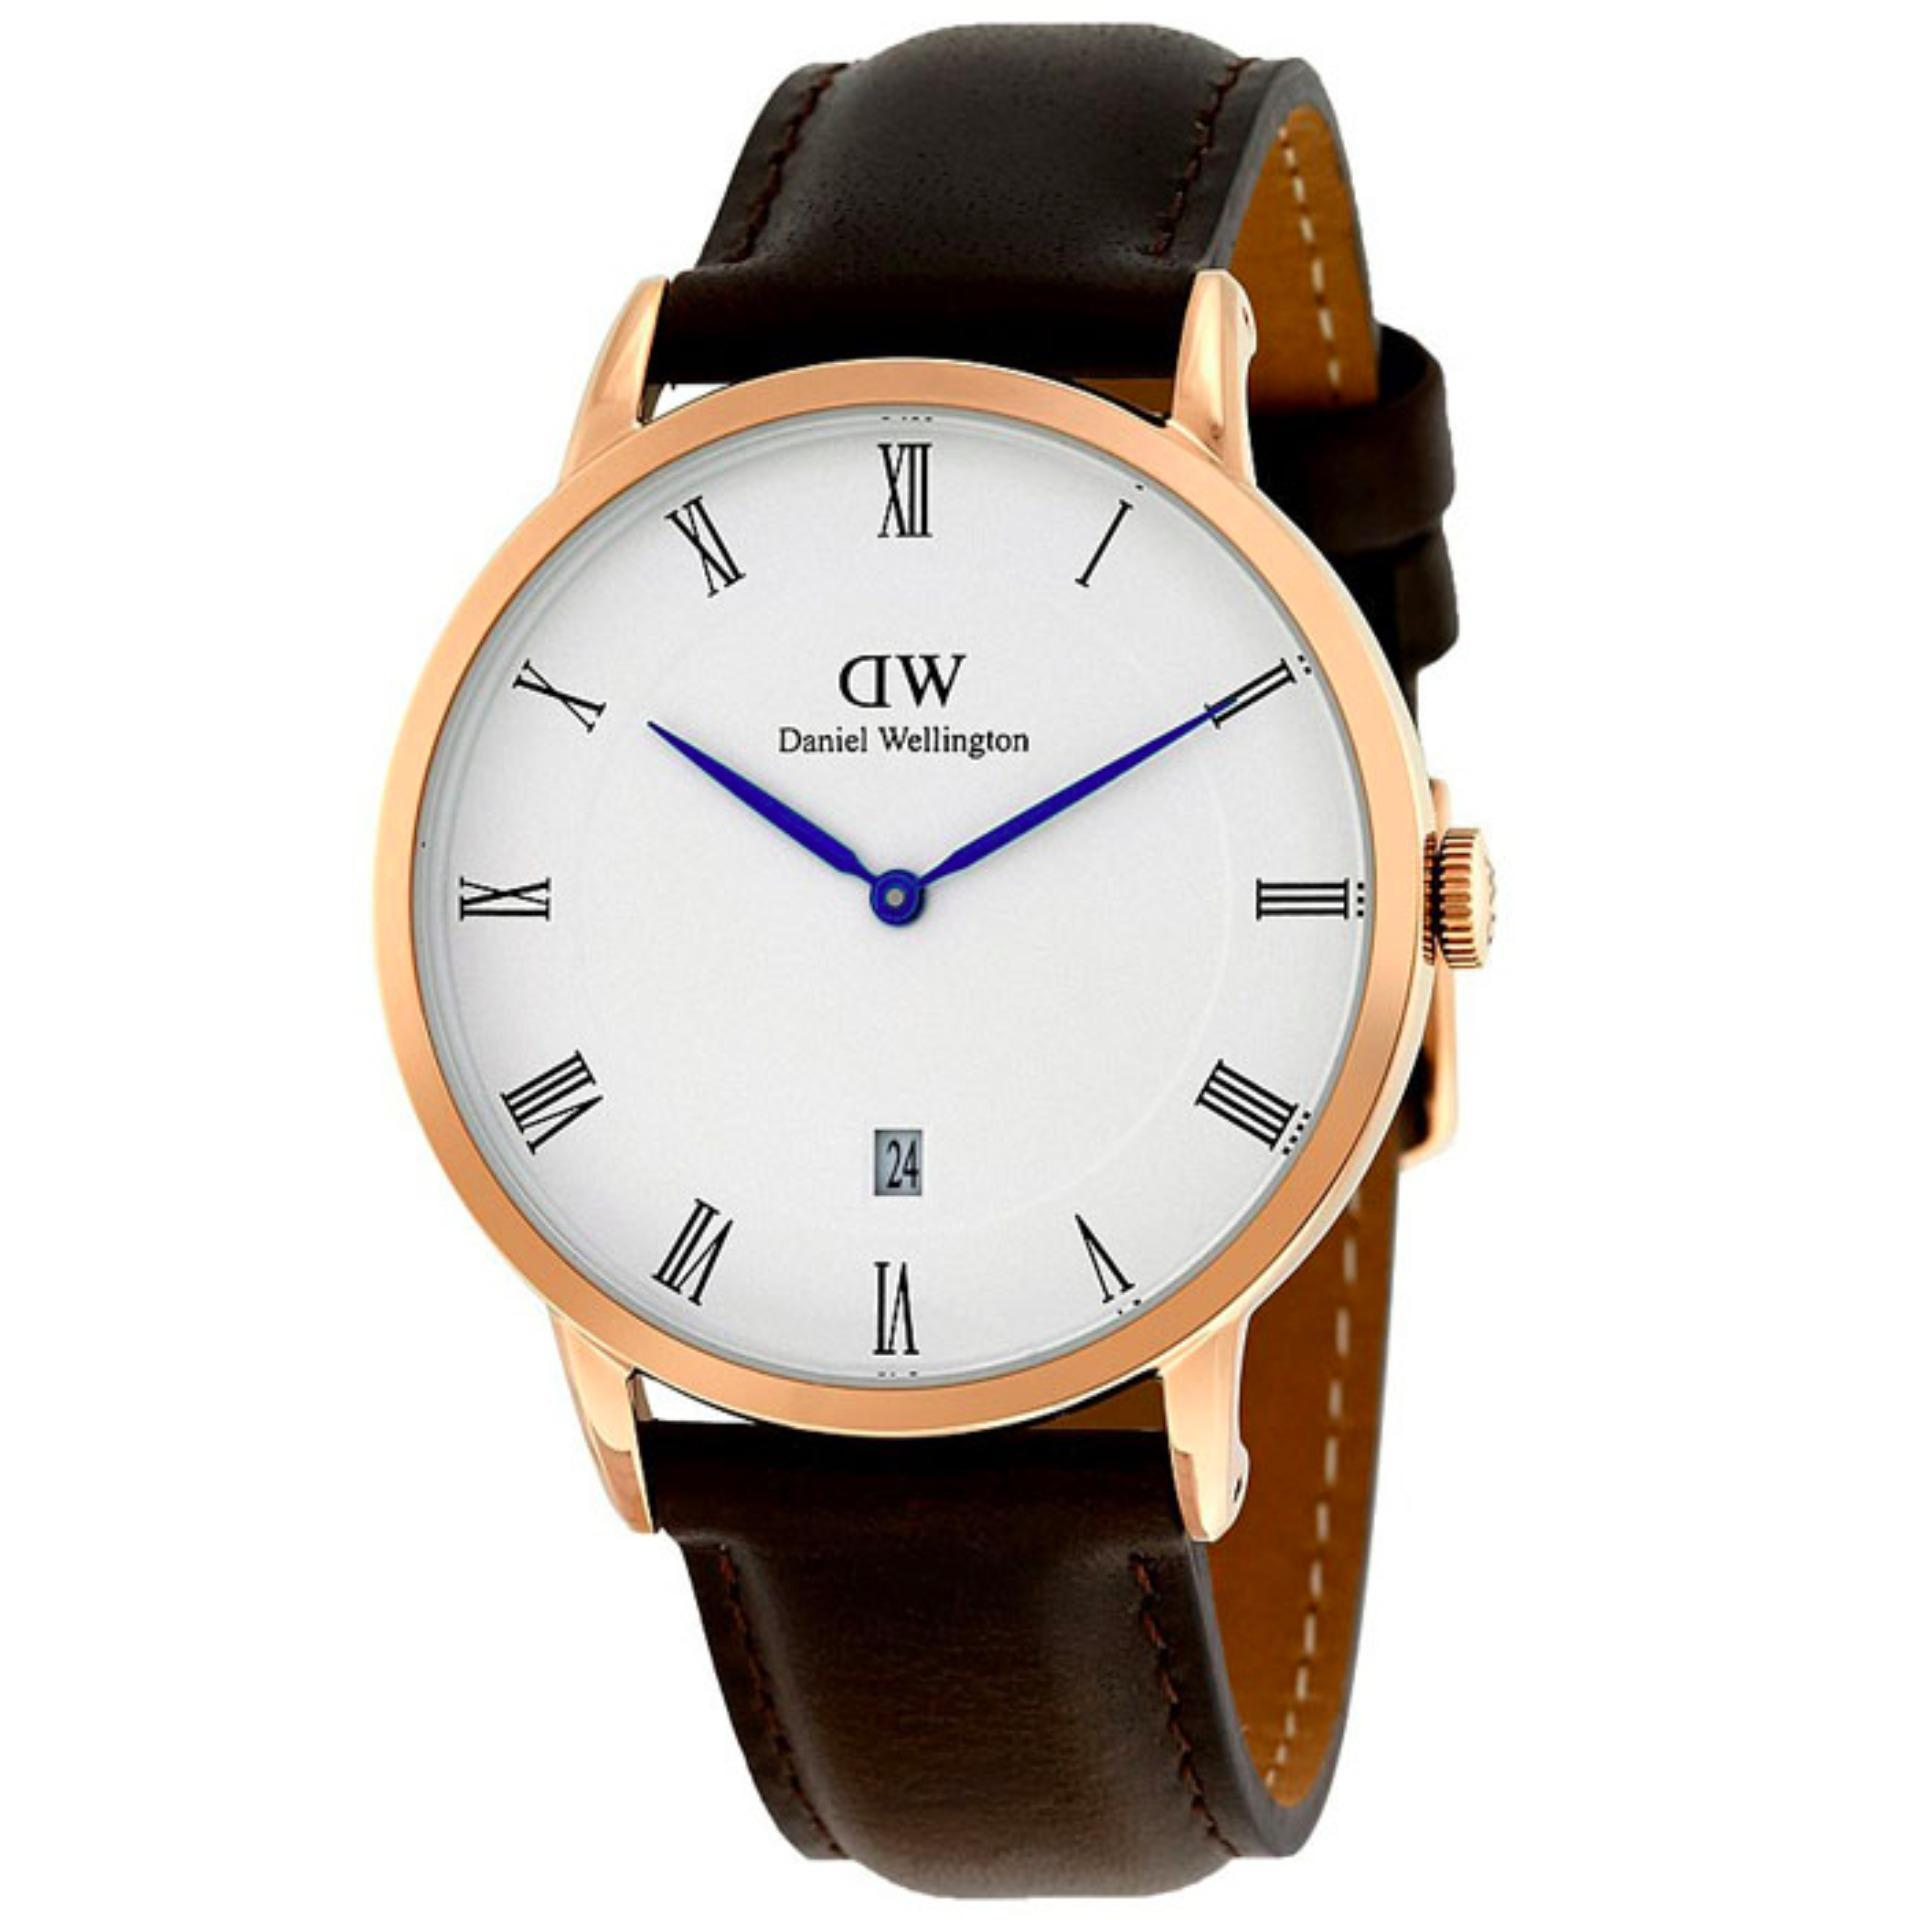 Daniel Wellington Jam Tangan Pria Wanita Strap Kulit 1103DW Dapper Rose Gold Dial Men Women Leather Watch - Brown